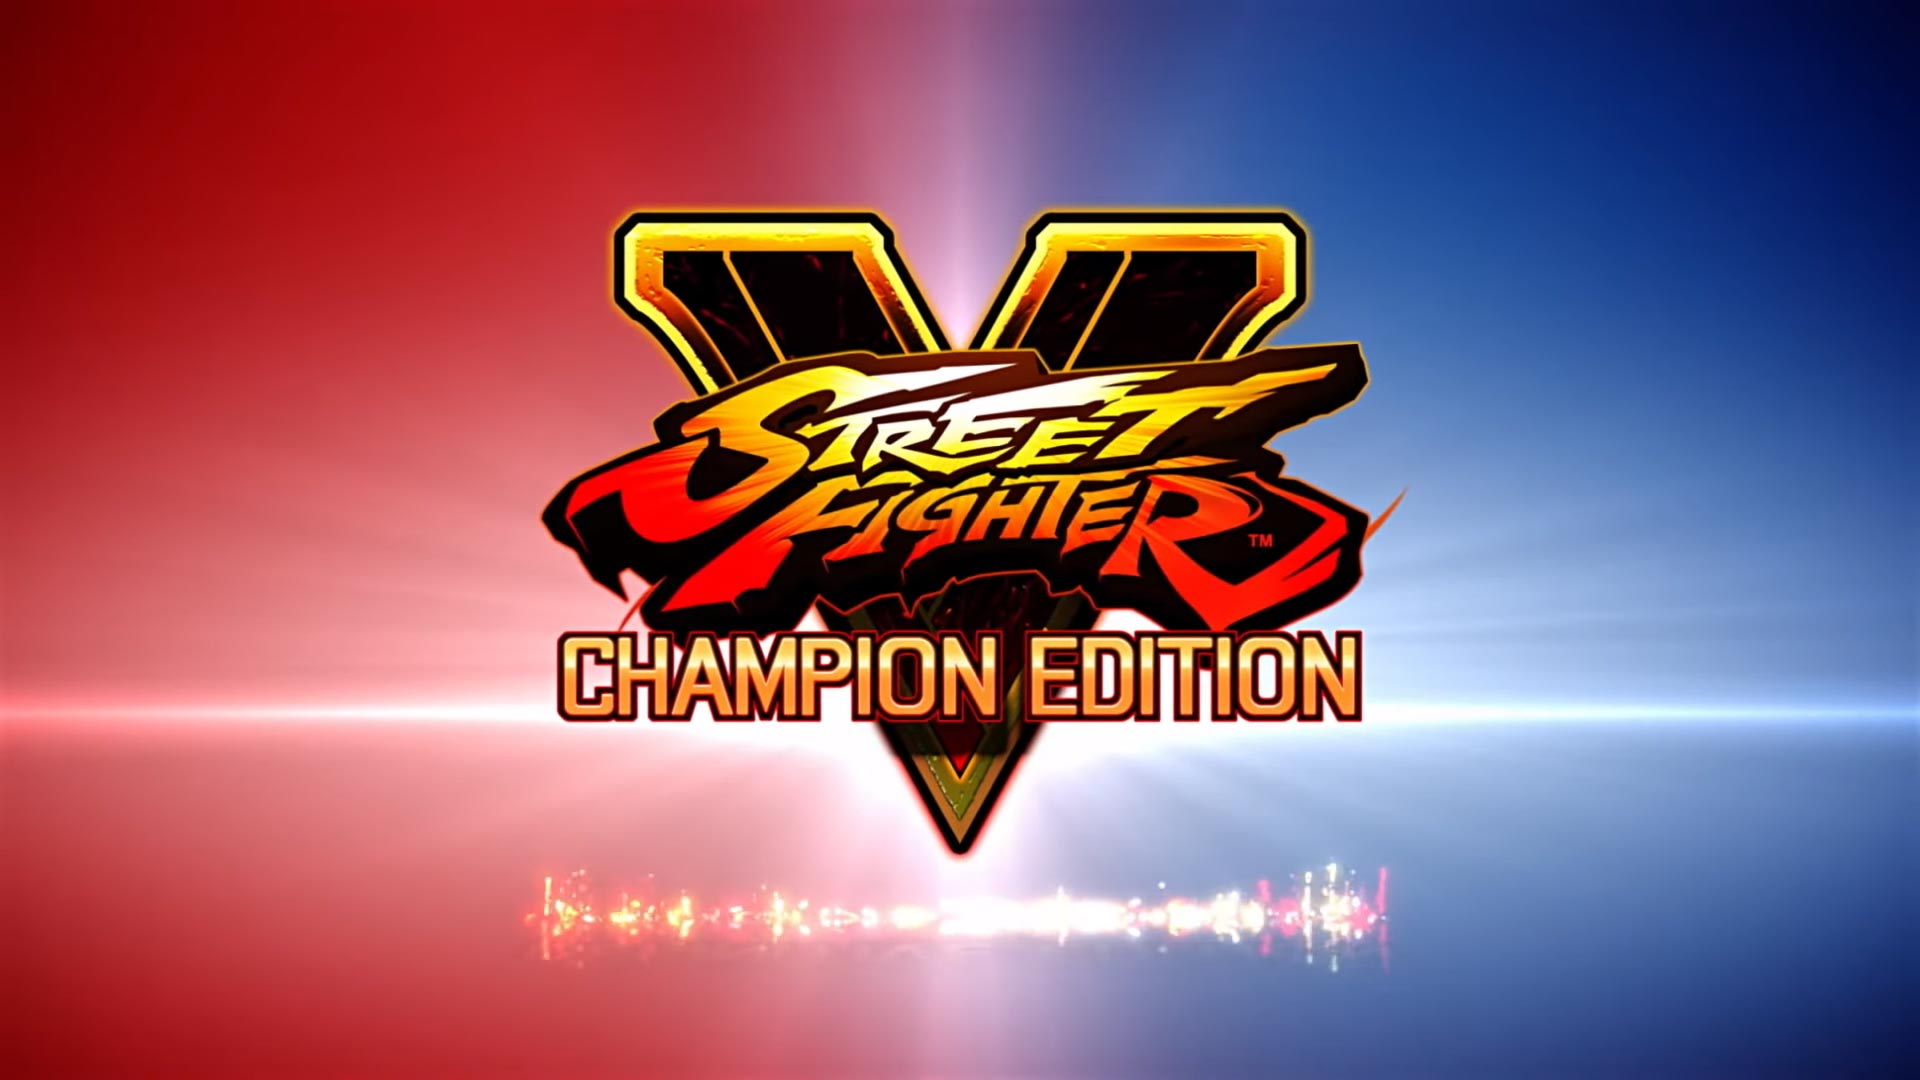 Street Fighter 5 Champion Edition 4 out of 5 image gallery